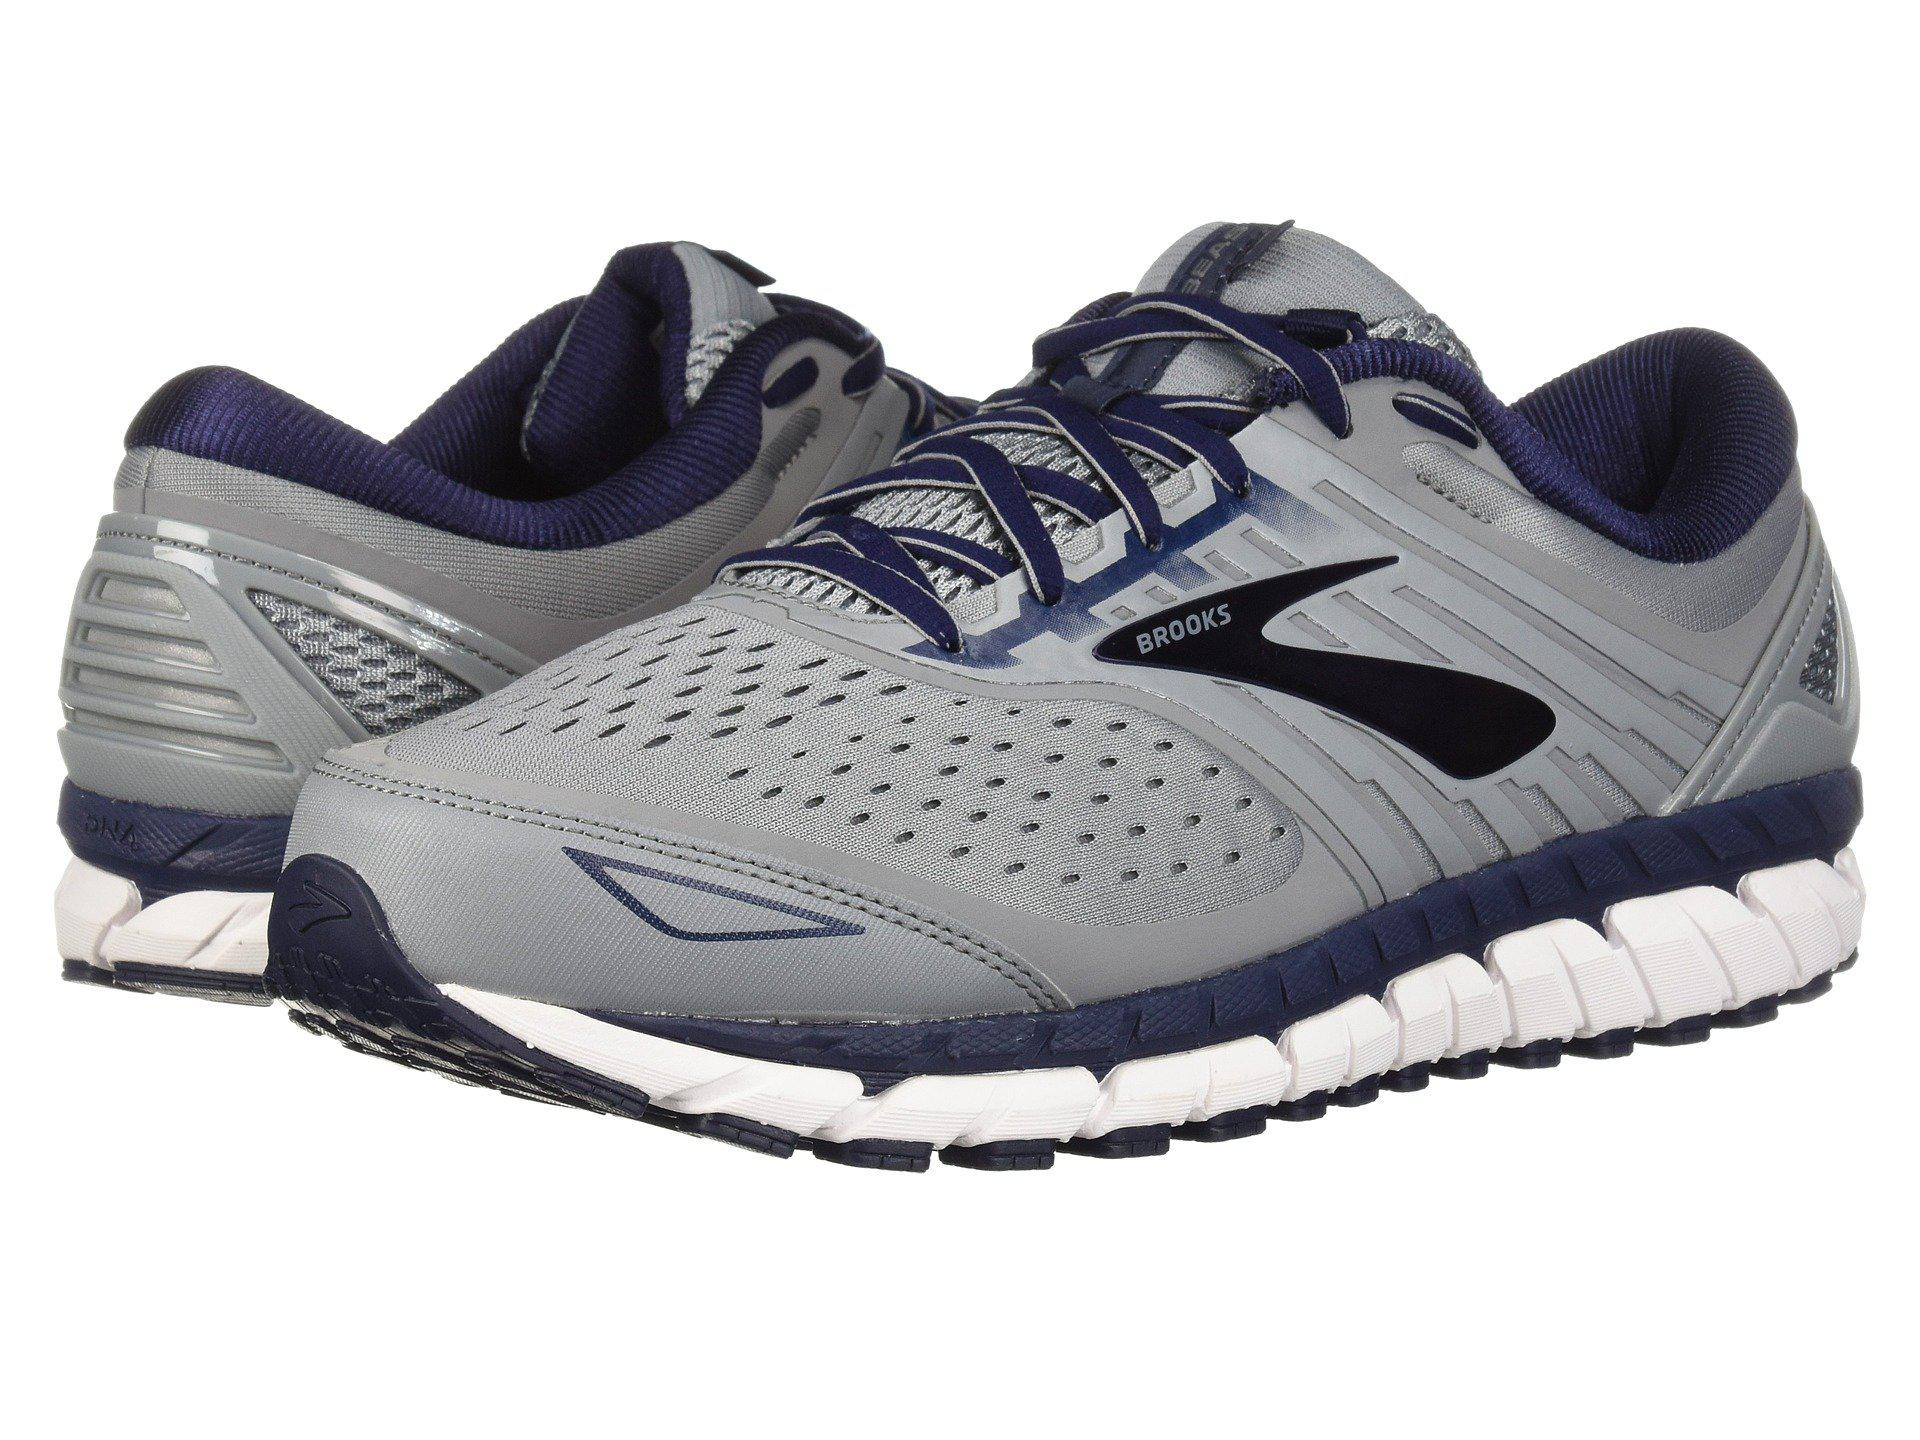 2ad75ad07daba Lyst - Brooks Beast  18 (black grey silver) Men s Running Shoes in ...